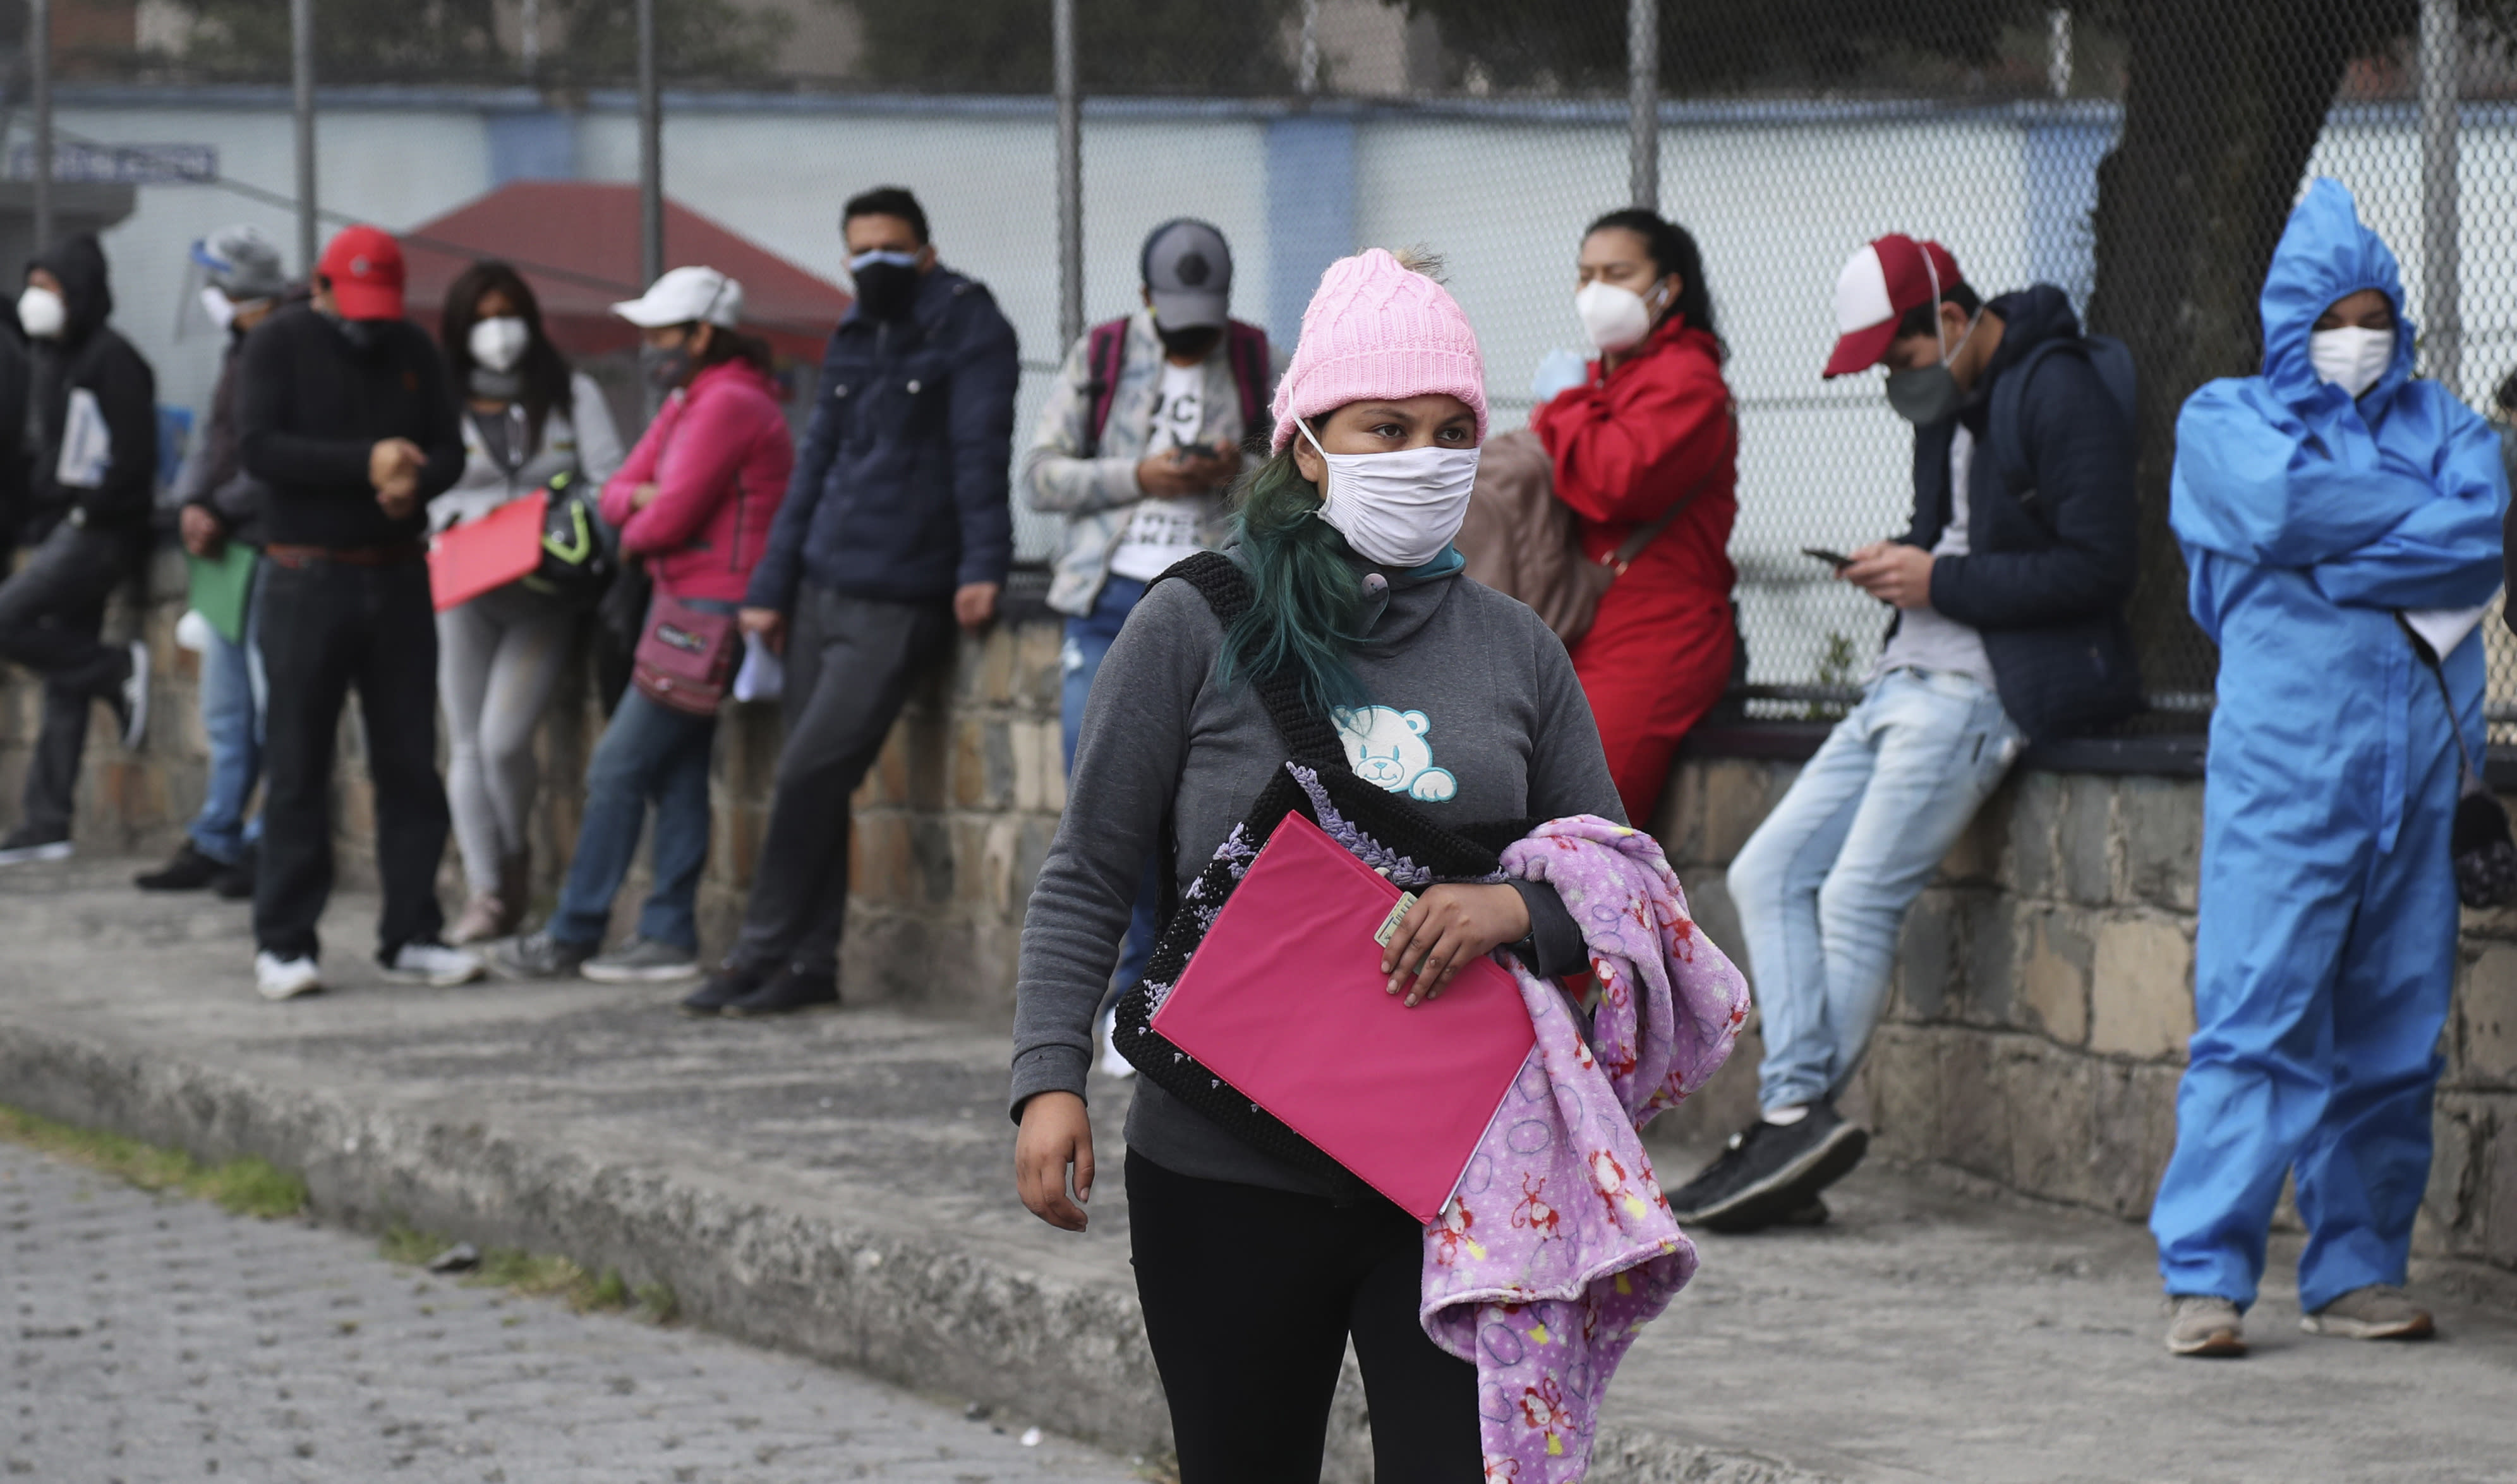 People wait in line to get COVID-19 tests, outside a health clinic in Quito, Ecuador, Wednesday, July 29, 2020. The Ecuadorian capital has experienced a surge in COVID-19 cases since the government started to reopen the economy last month. (AP Photo/Dolores Ochoa)